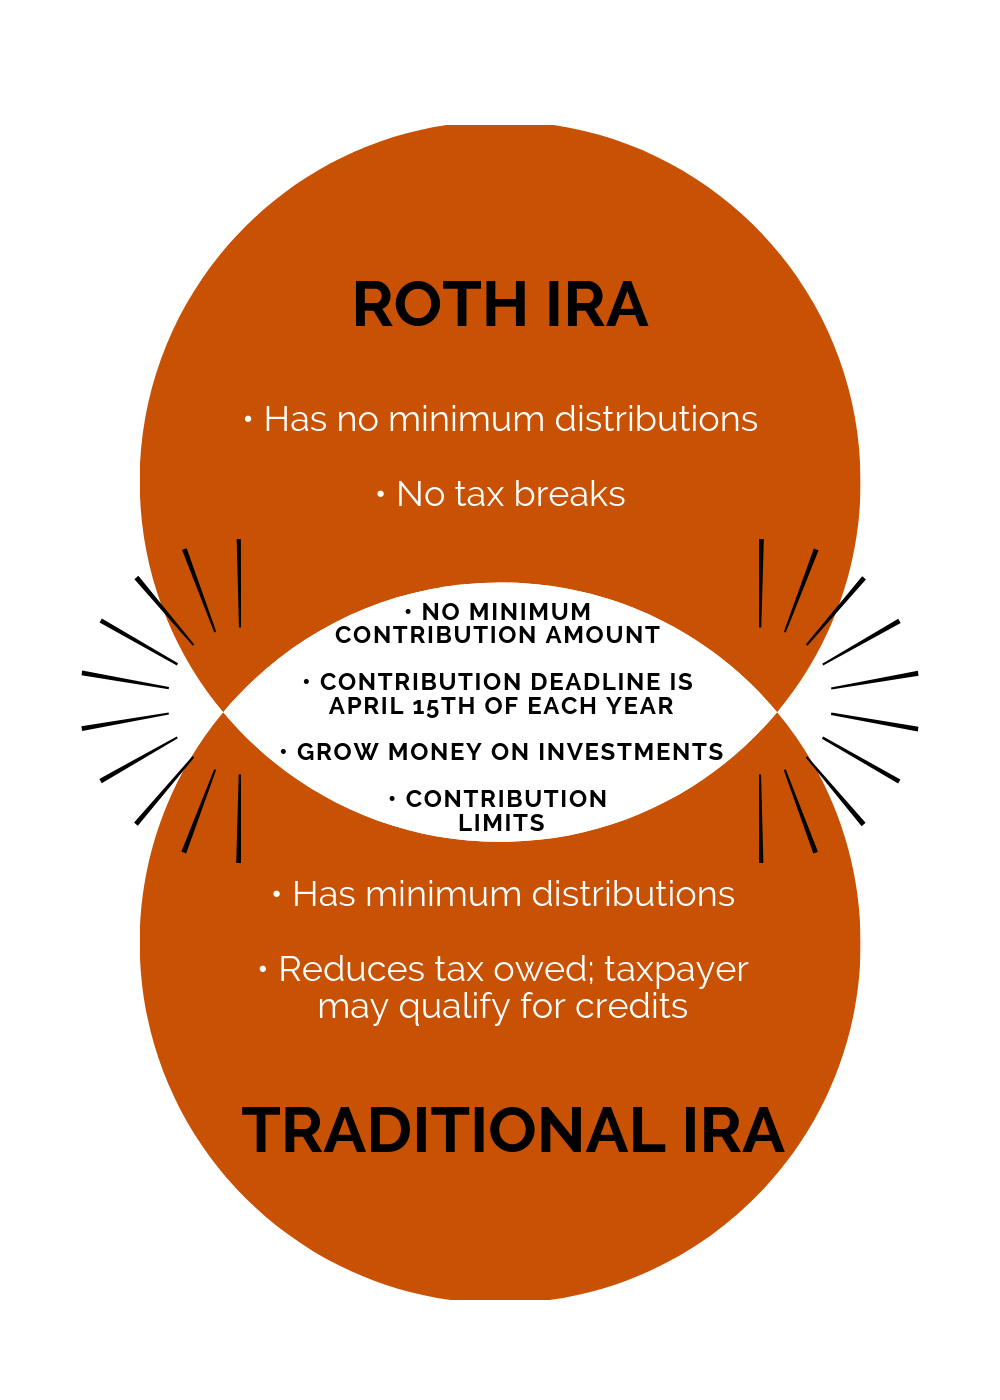 Roth Ira Vs Traditional Ira  Which One To Choose